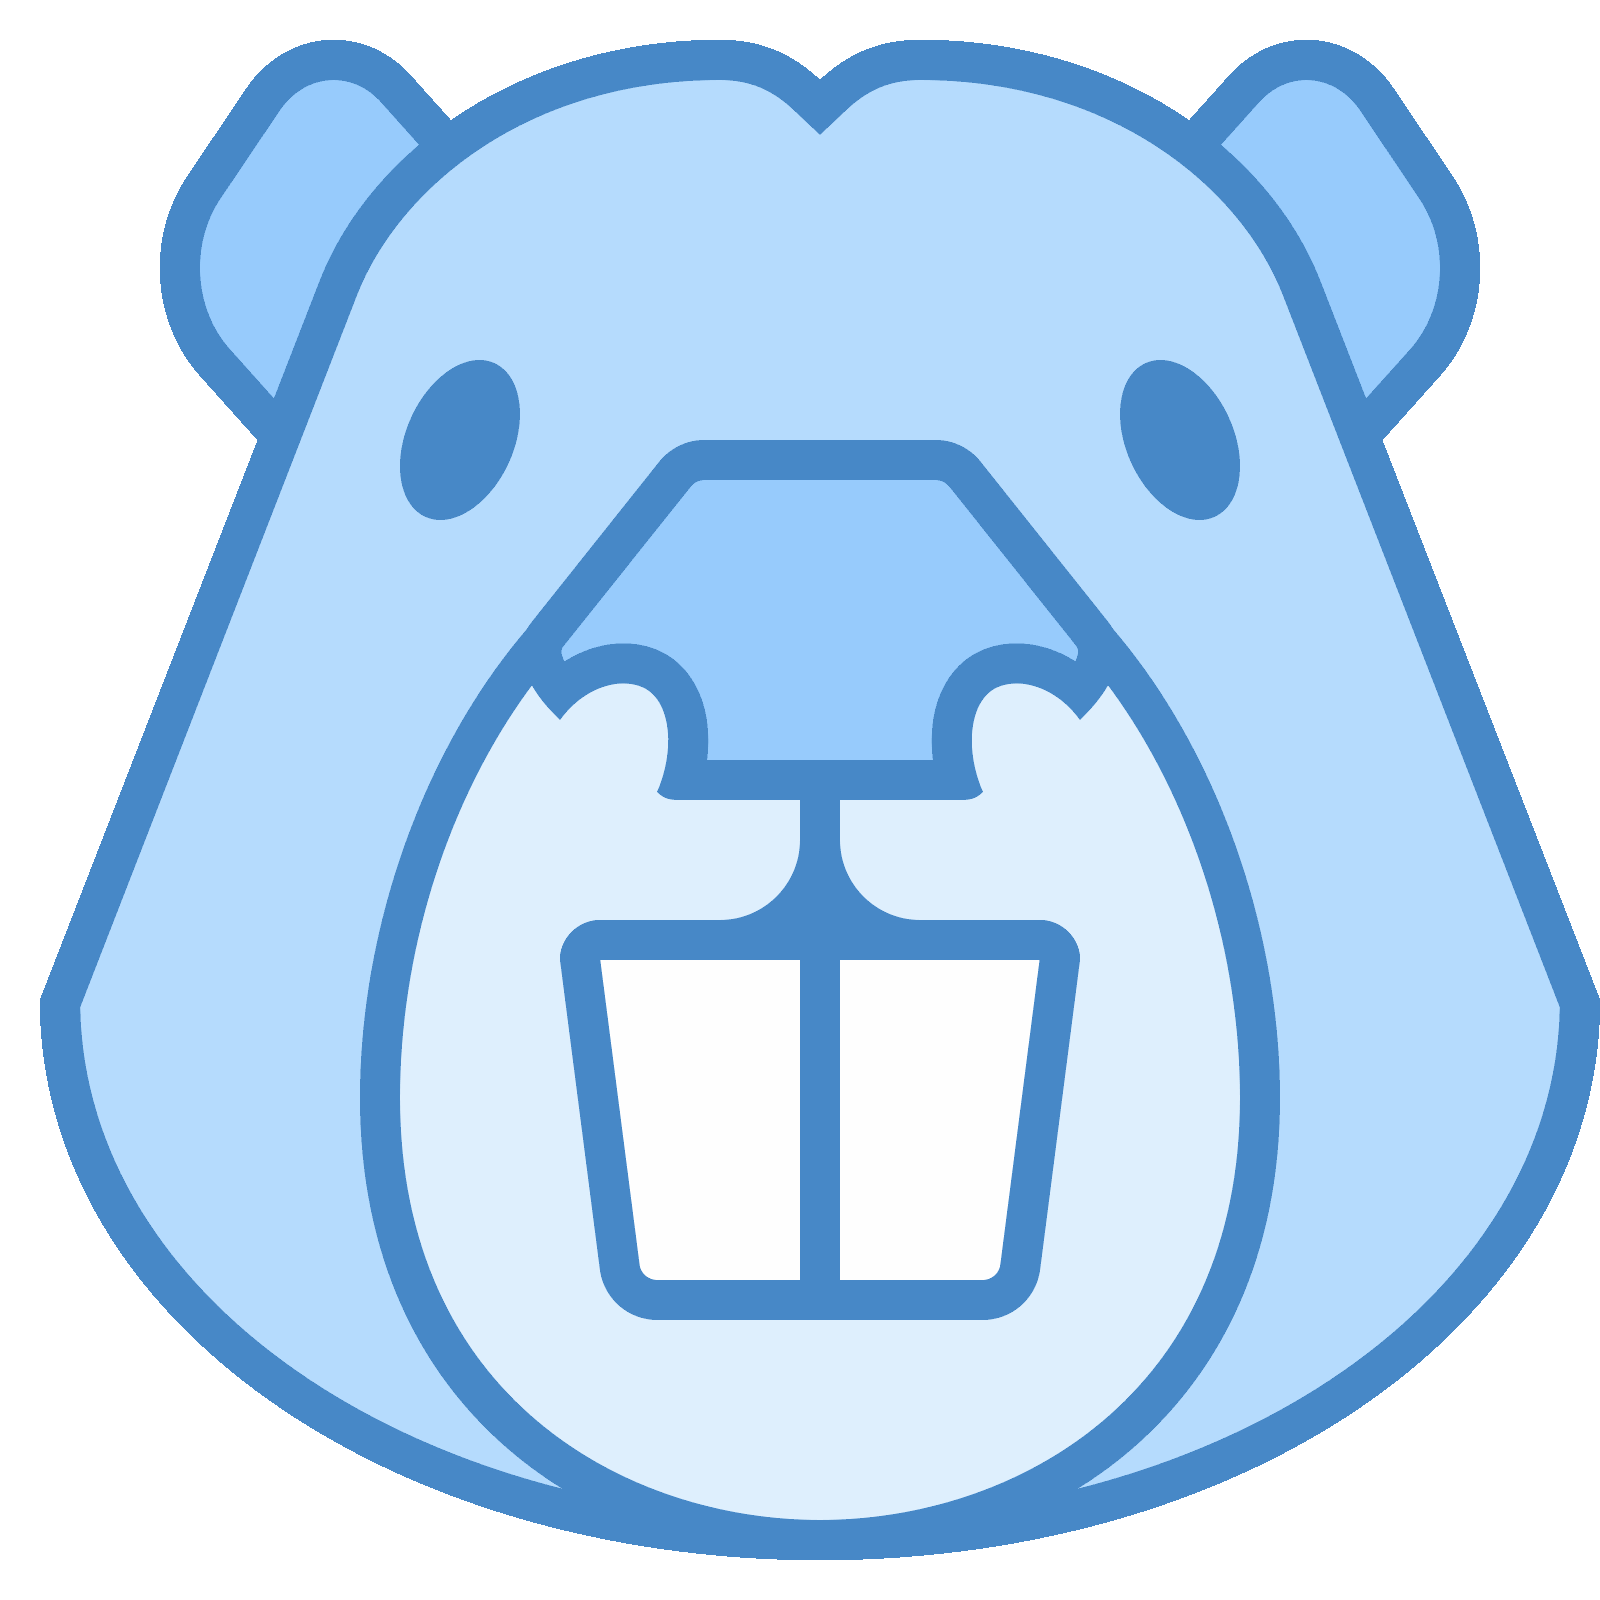 Buck teeth png. Beaver icon free download